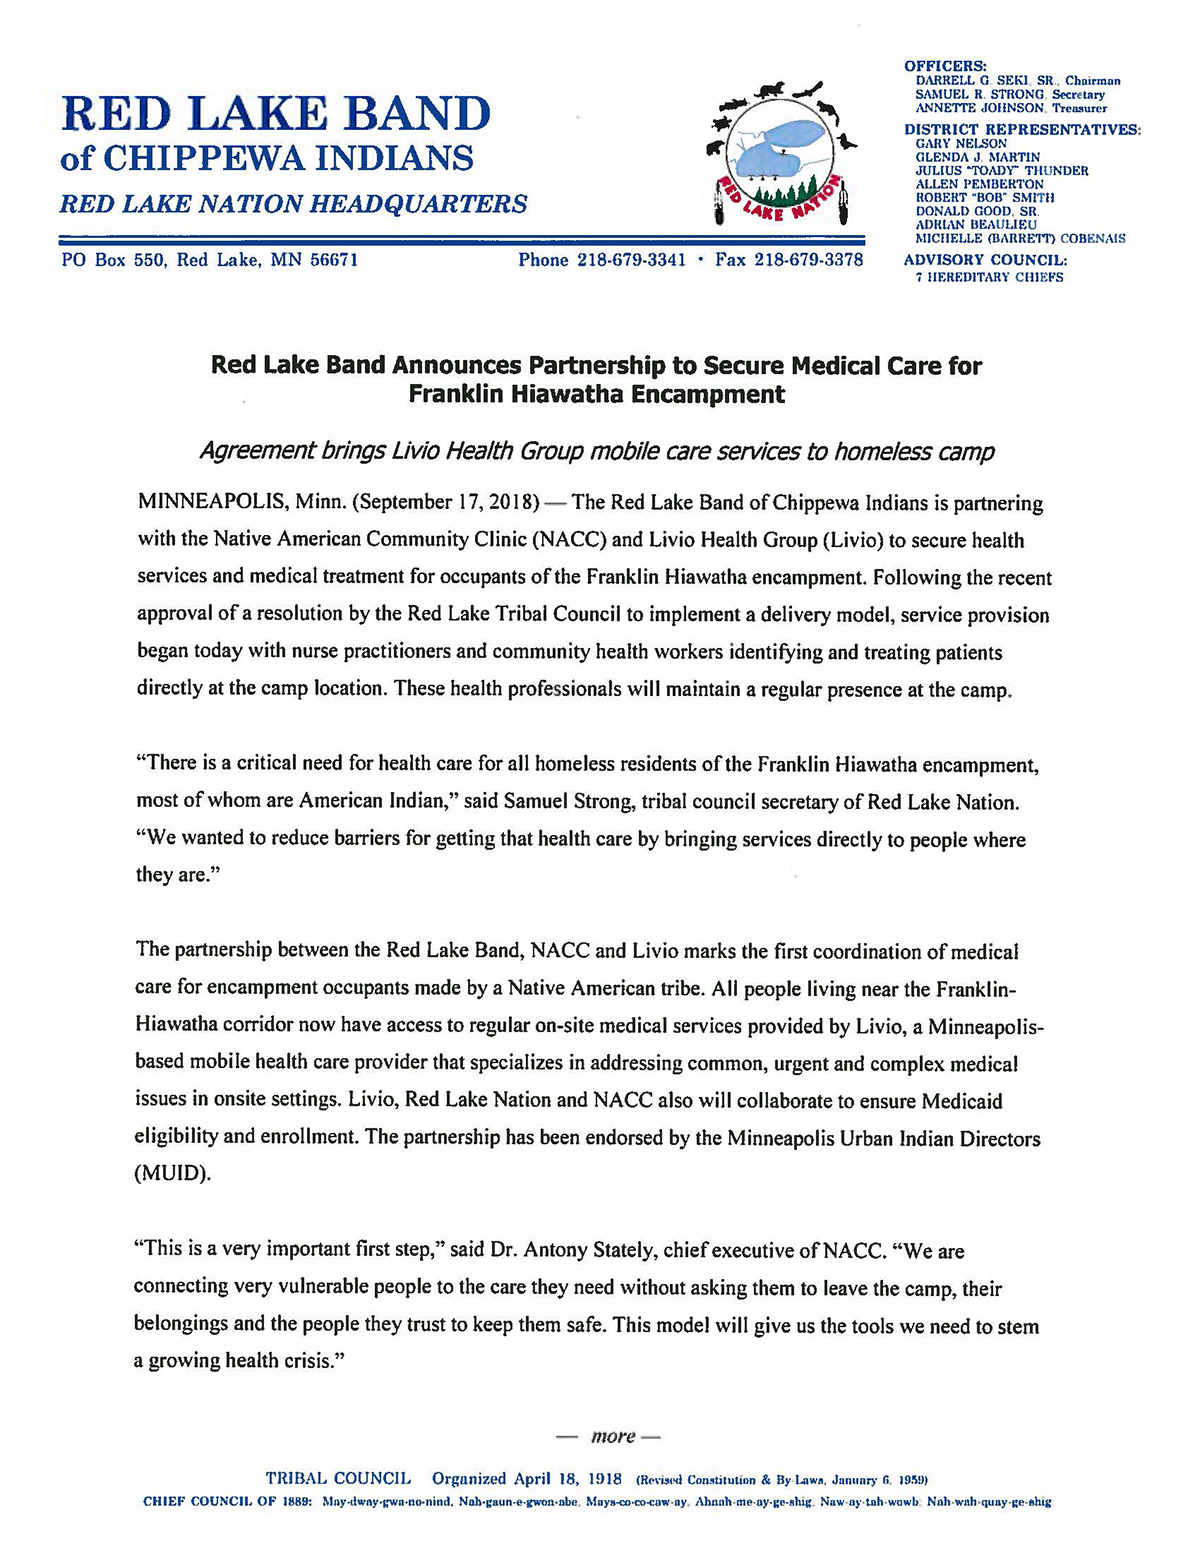 Red Lake Band Announces Partnership to Secure Medical Care for Franklin Hiawatha Encampment